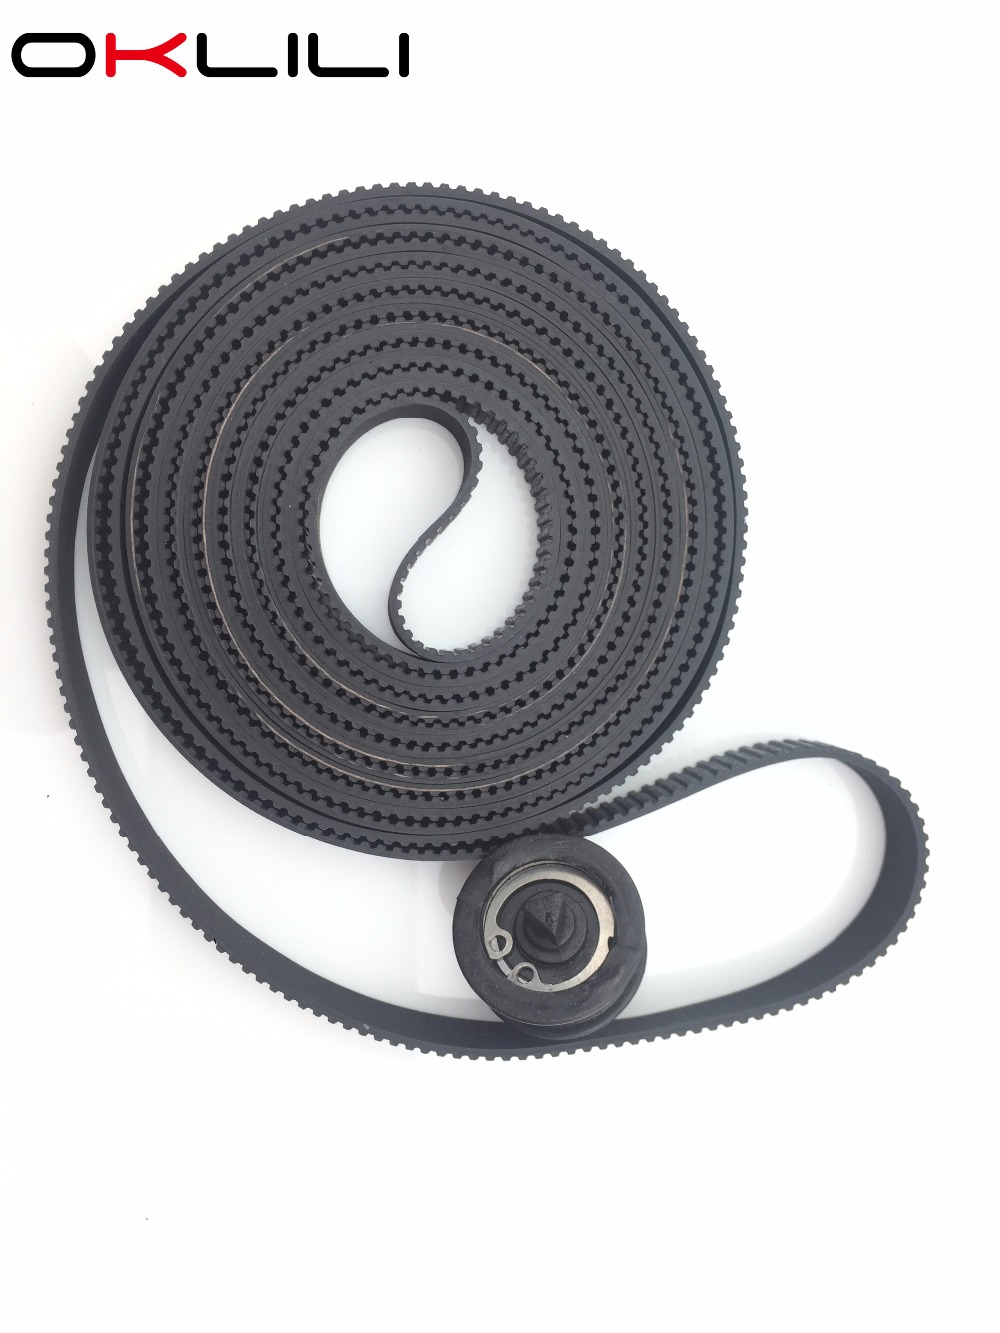 C7770-60014 Carriage Belt 42 B0 Size with Pulley for HP DesignJet 500 500PS 800 800PS 510 510PS 815 CC800PS 820 815MFP 820MFP free shipping original new c7770 60274 carriage assembly trailing cable kit b0 for hp500 500ps 800 800ps 815 820